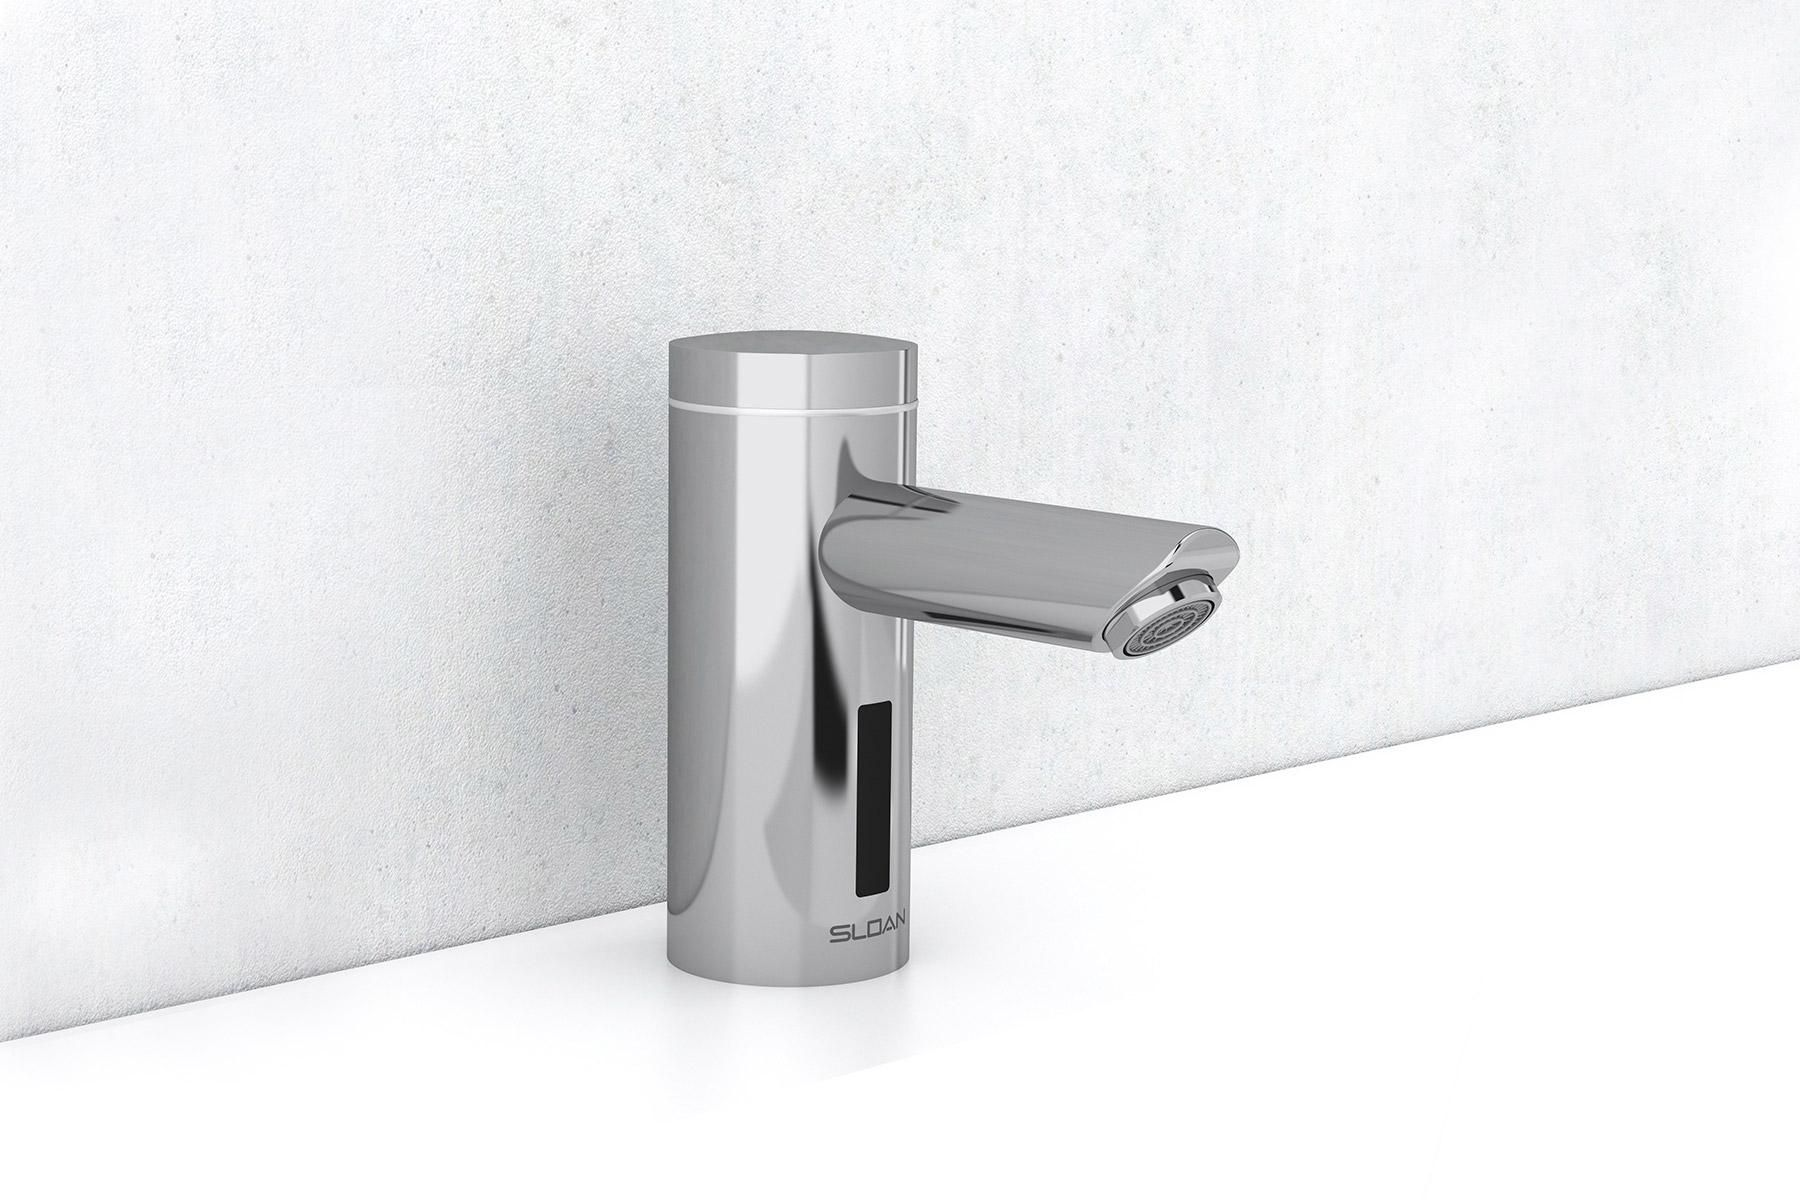 Sloan Touchless Faucets Enhance Any Commercial Restroom Sink